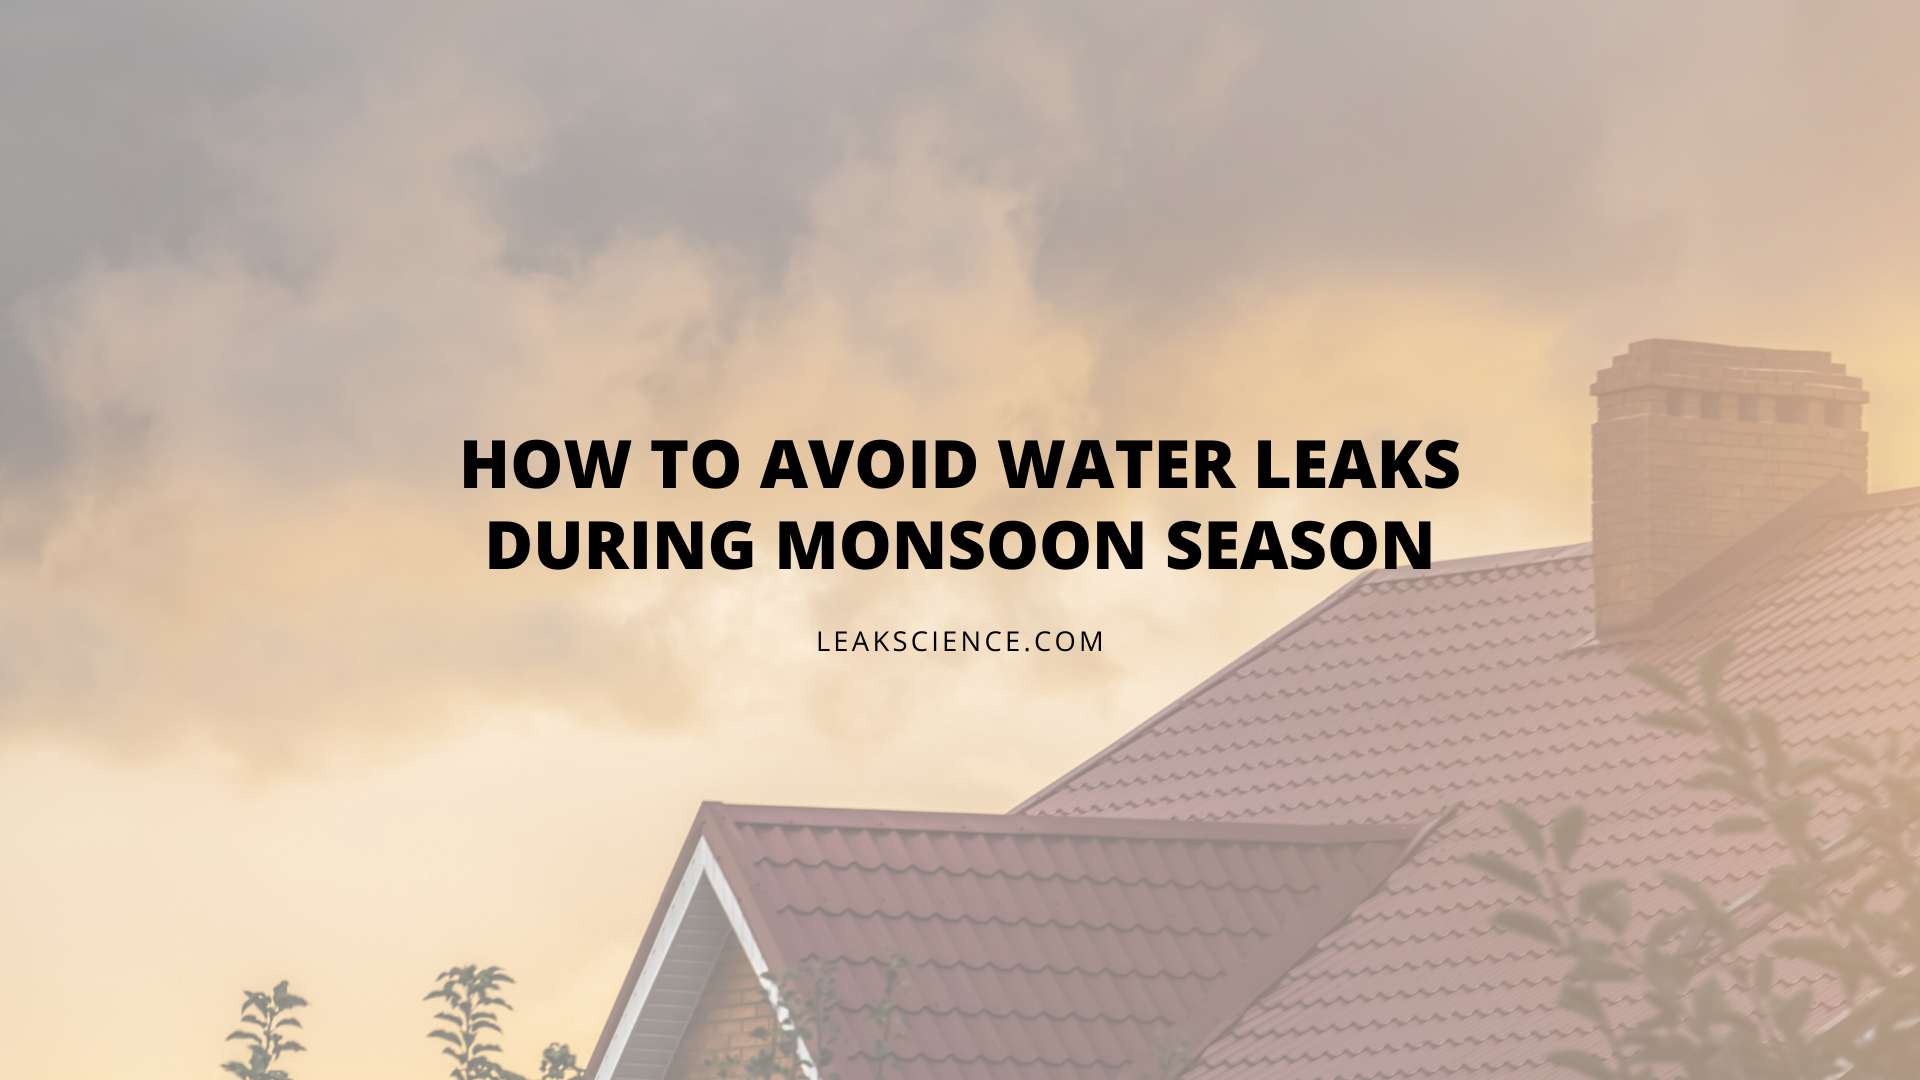 HOW TO AVOID WATER LEAKS DURING MONSOON SEASON